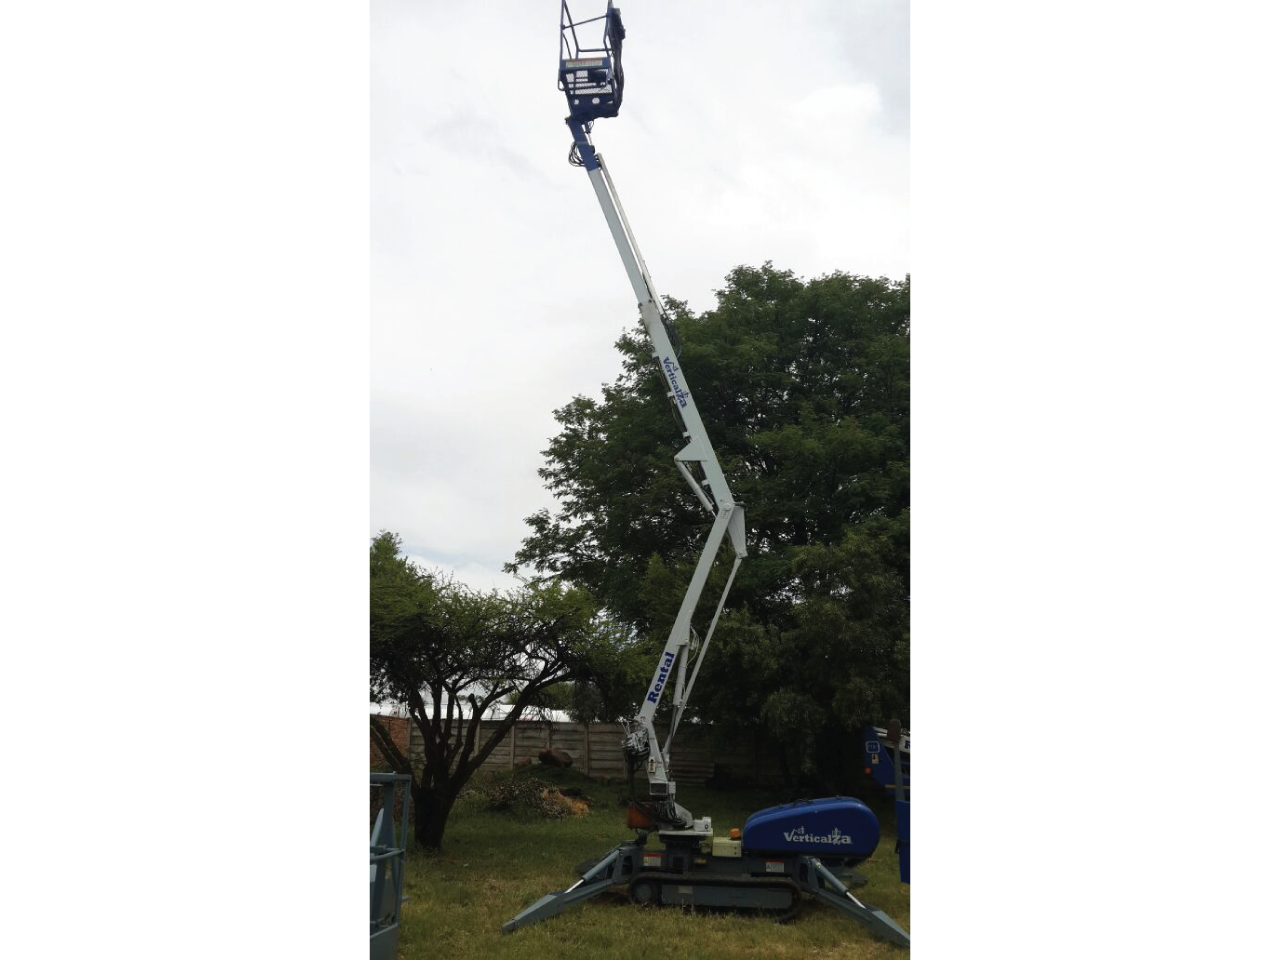 Nifty-Lift-TD120TDAC-Tracked-Cherry-picker-Hire